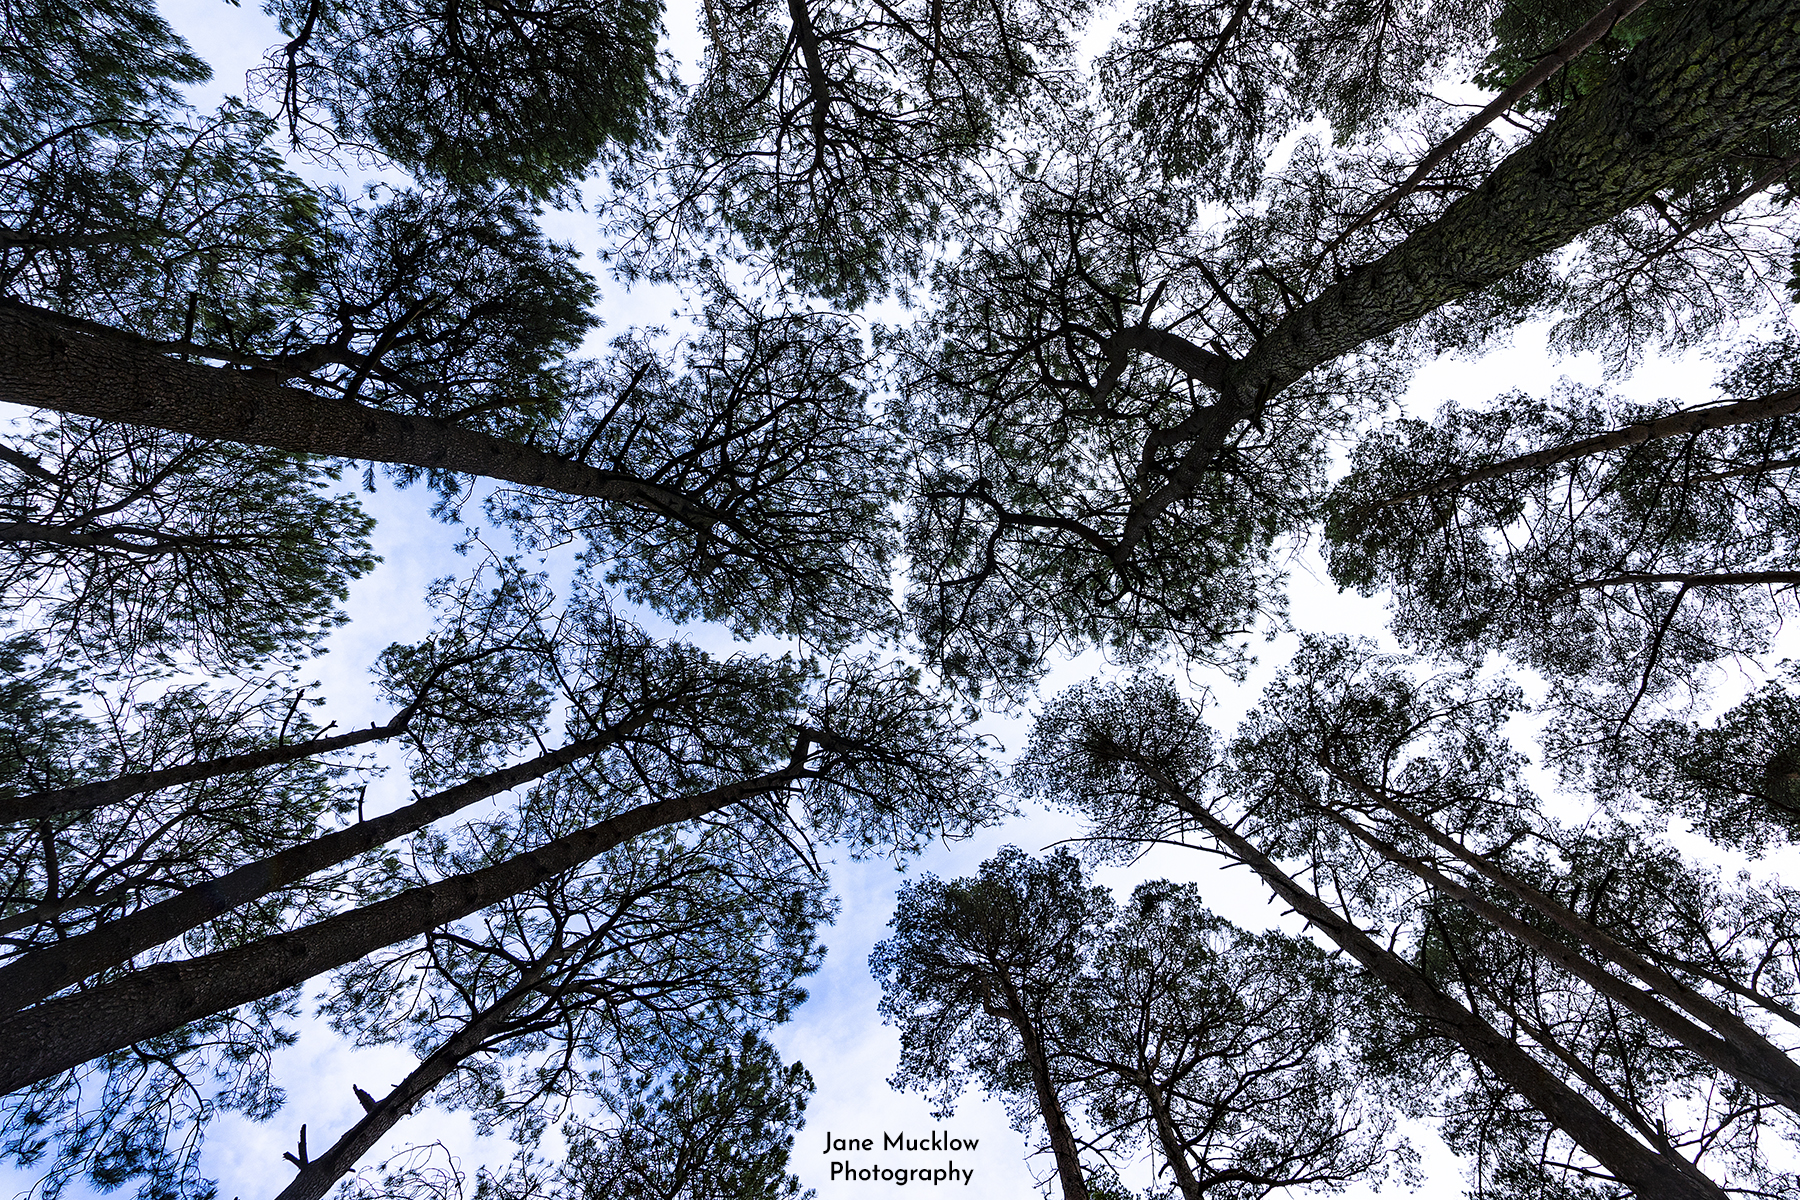 Photo looking up at the pine trees on Brownsea Island by Jane Mucklow